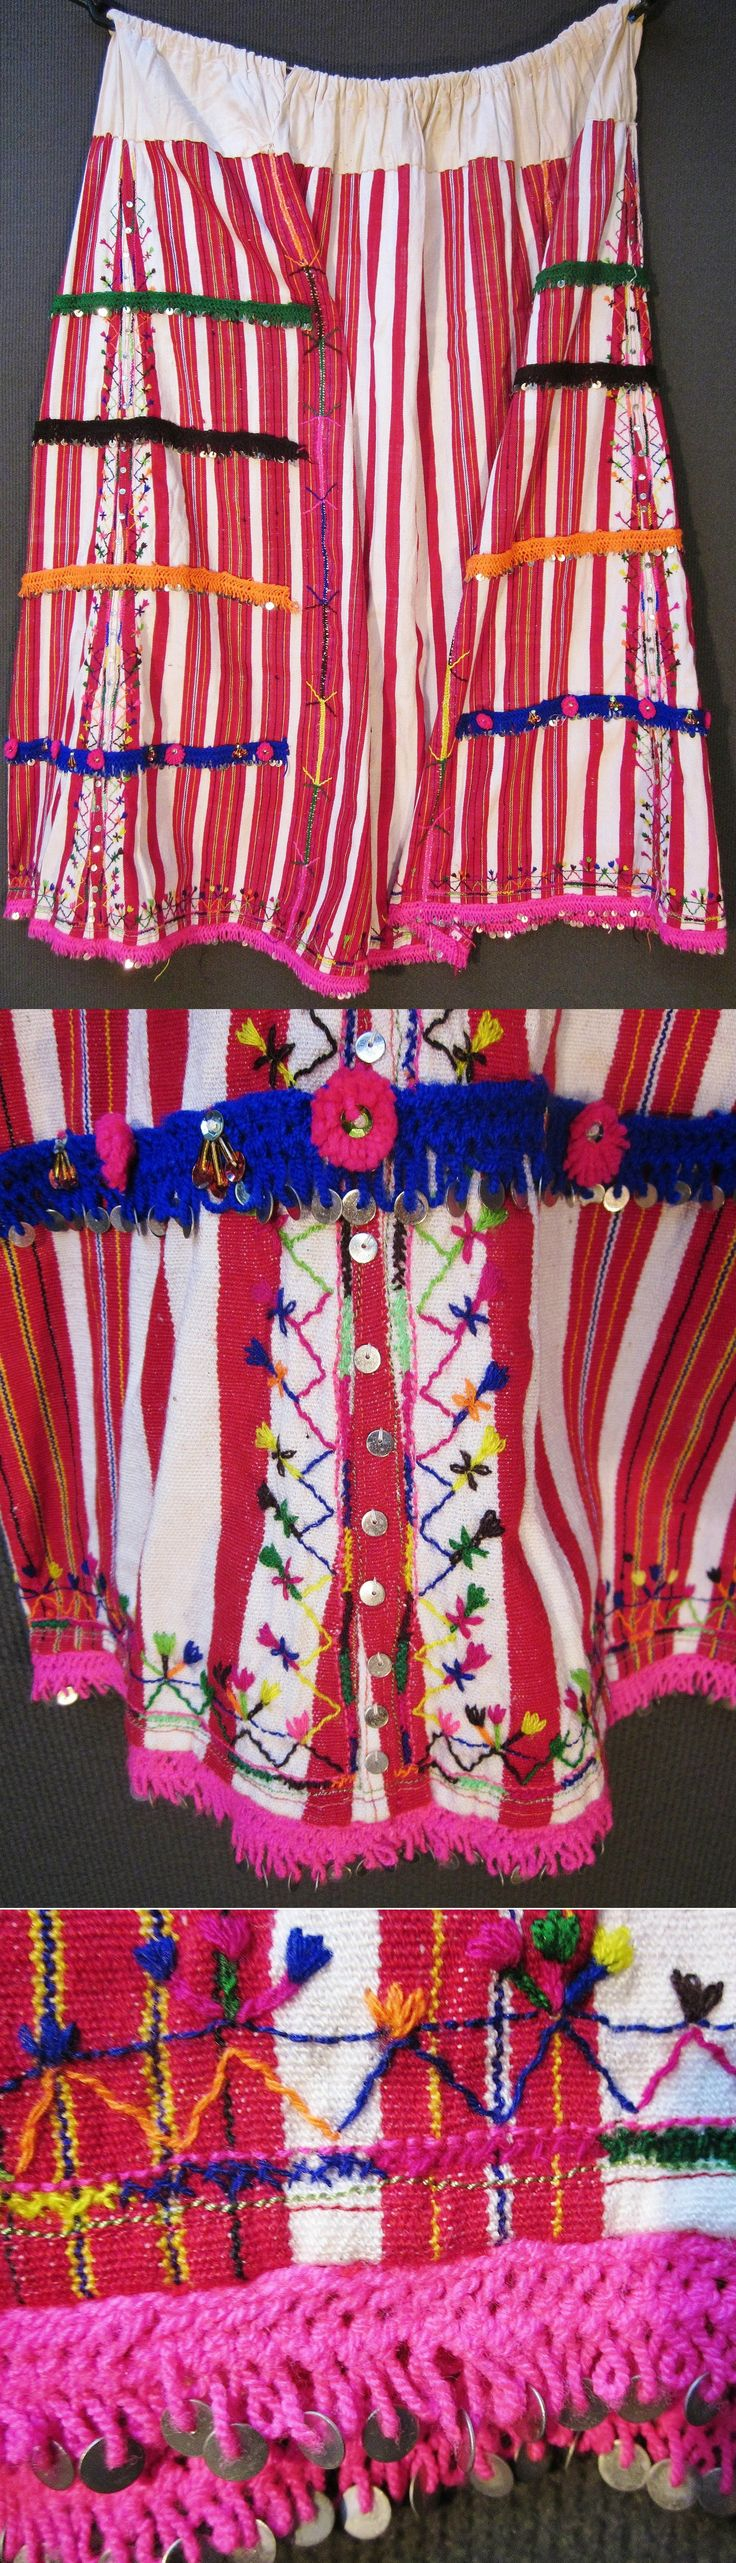 An embroidered cotton 'etek' (skirt)  from the Pomak villages near Biga (Çanakkale prov.).  Part of the traditional festive costume for women.  Circa 1950-1975.  Hand-woven fabric, adorned with (cotton & lurex threads) embroidery, metal & mica sequins, cotton crochet lace with metal sequins, glass beads and (cotton or orlon) pom-poms.  (Inv.nr. ete003 - Kavak Costume Collection - Antwerpen/Belgium).